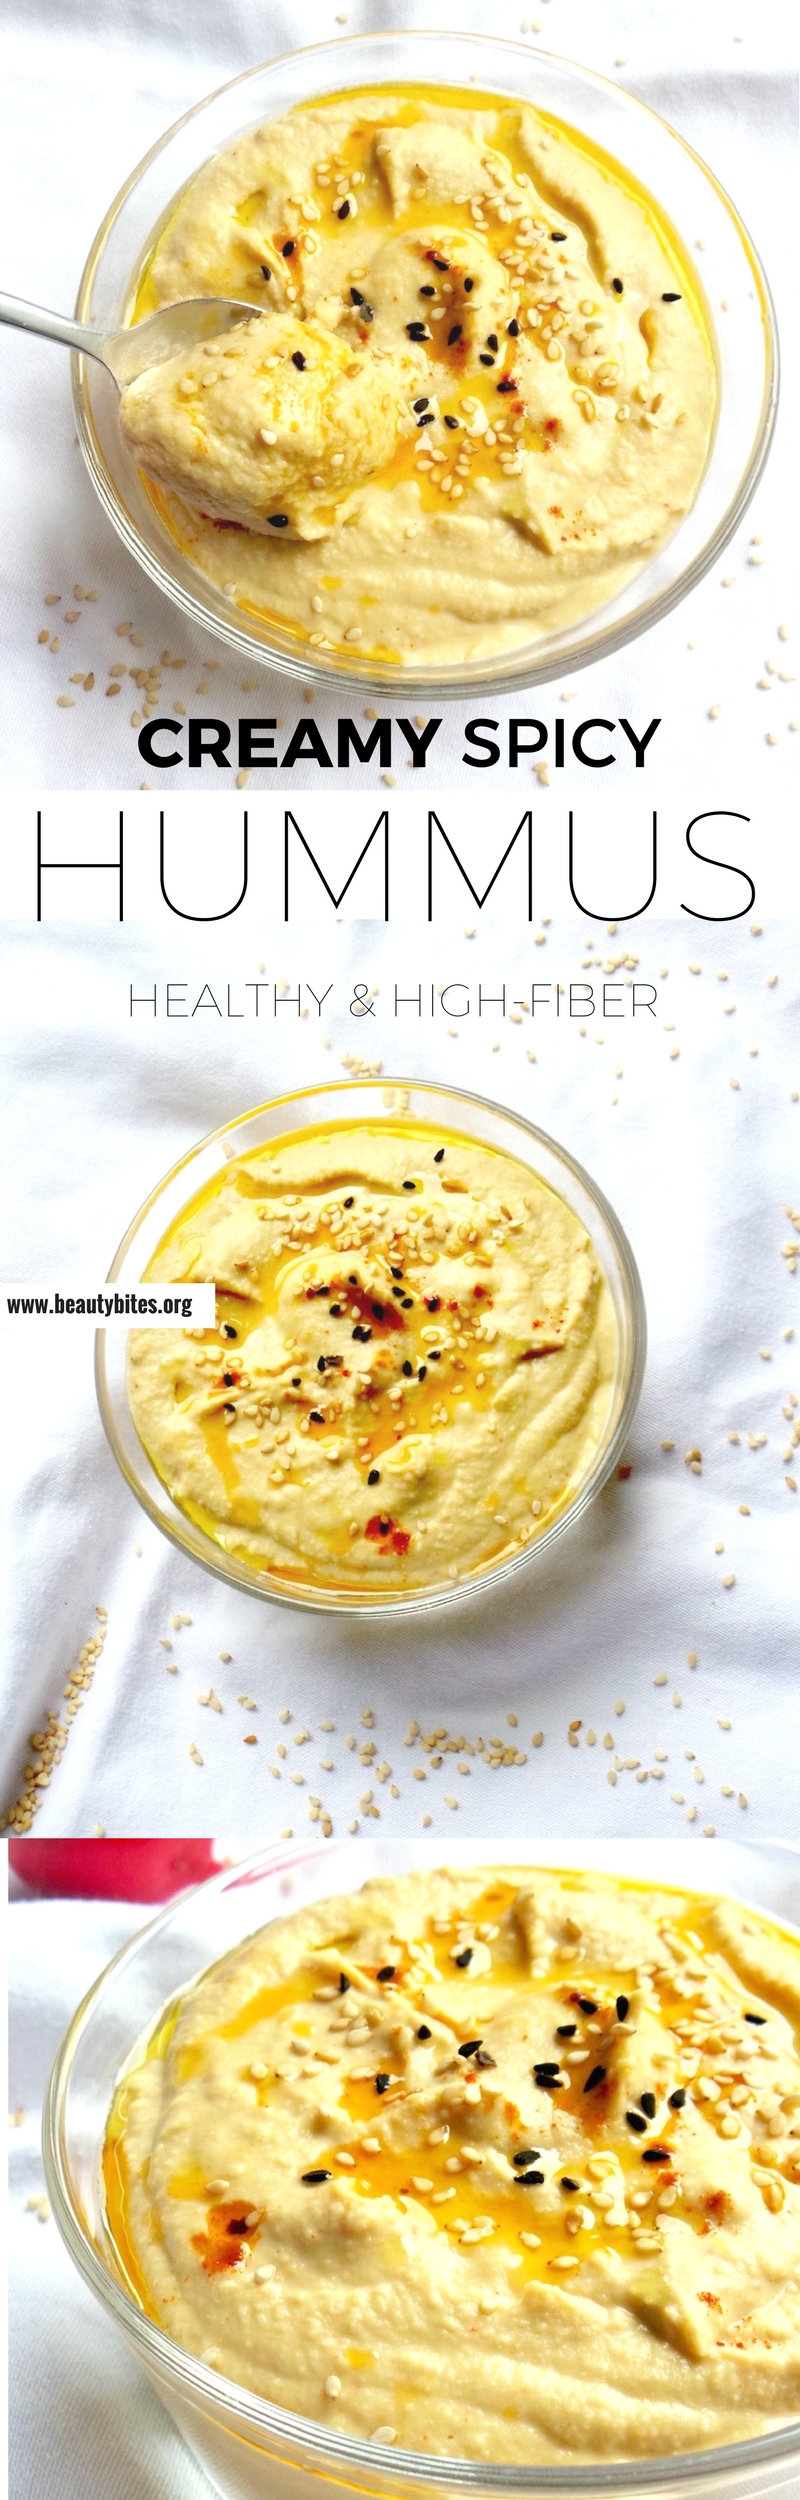 Love this easy healthy hummus recipe, you can make it in 5 minutes. This is a vegan, gluten-free and high-fiber recipe #healthyrecipes